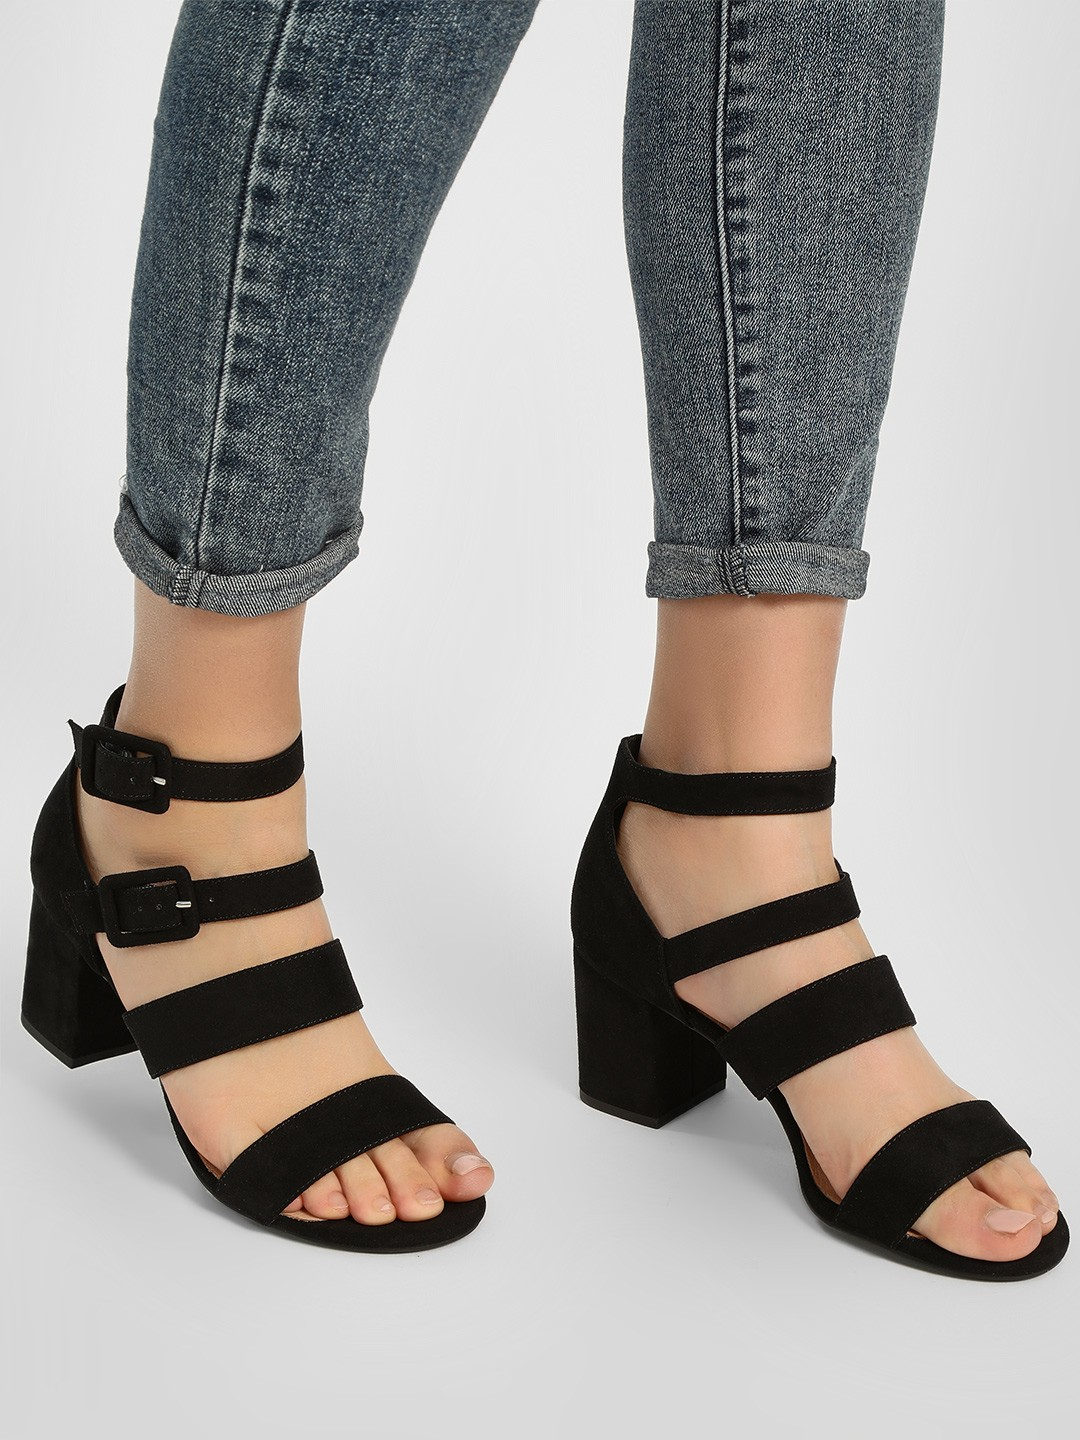 New Look Black Suede Finish Heeled Sandals 1